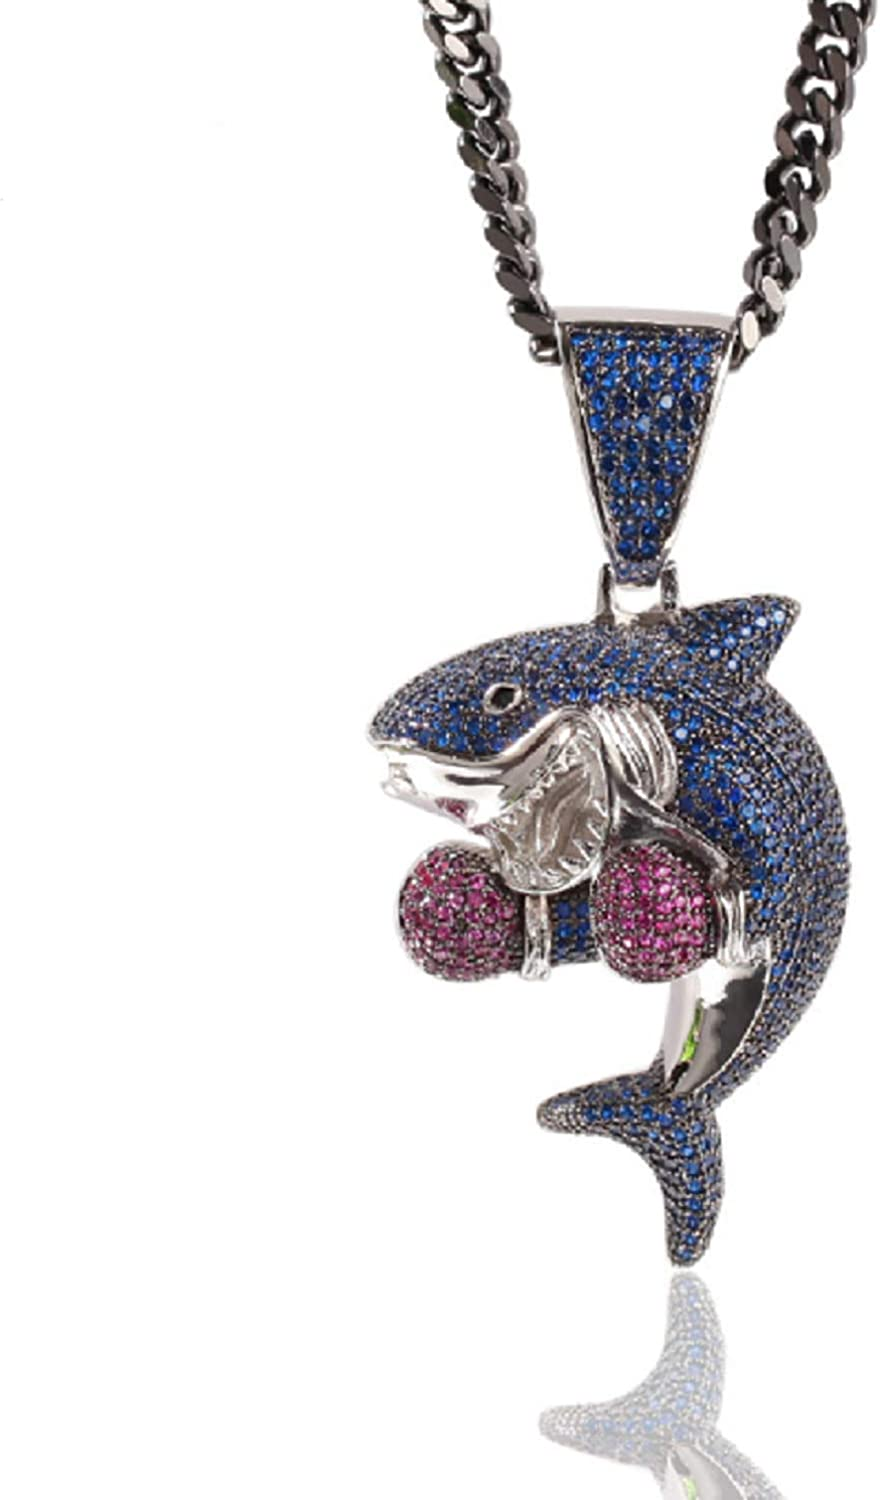 JECAXIN Hip Hop Bubble Bling Iced-Out Blue Boxing Shark Pendant Necklace 24-inch Cuban Chain